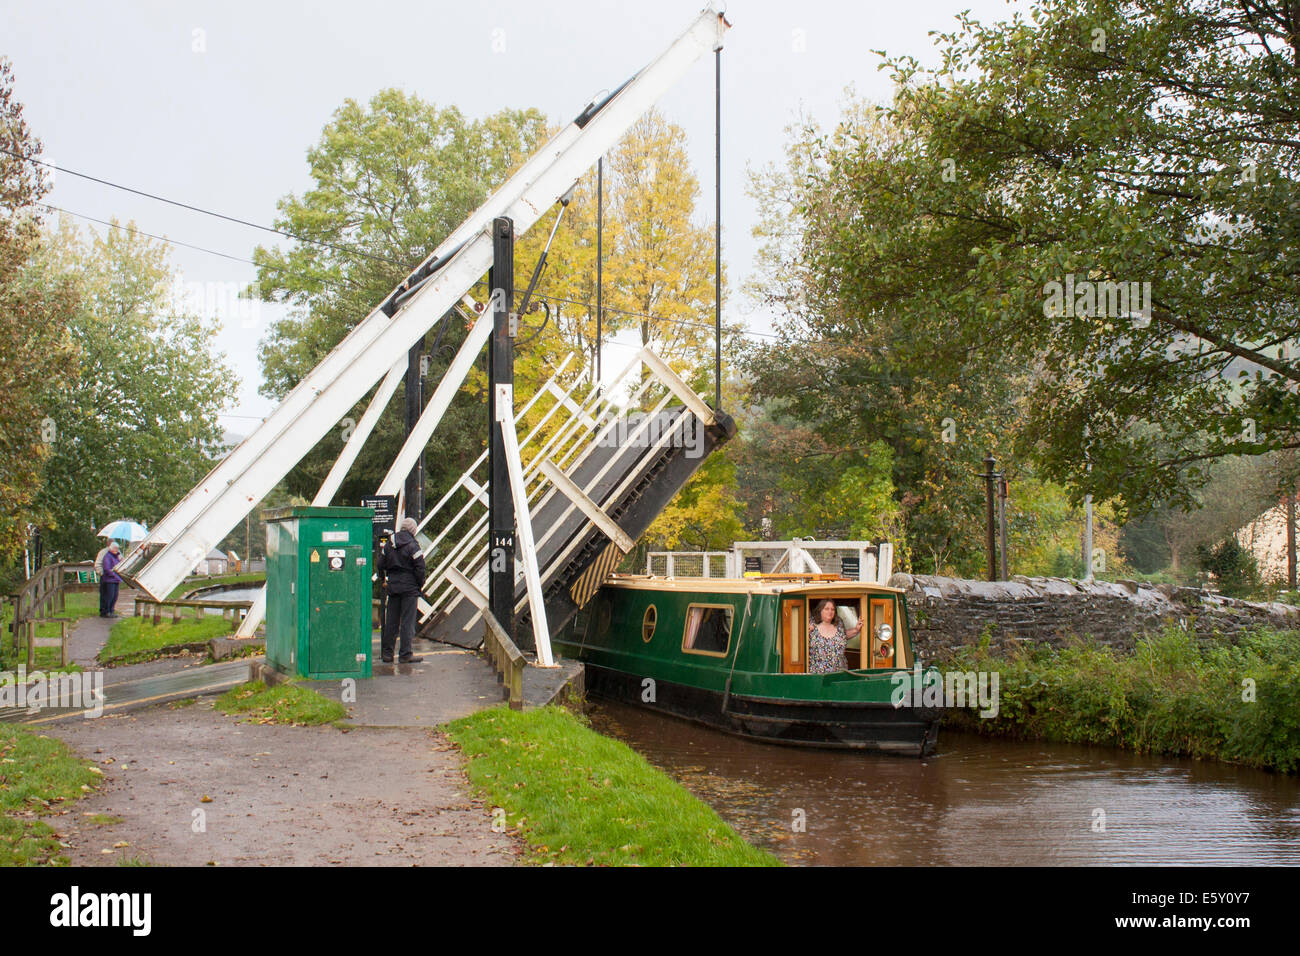 Talybont Drawbridge No 144, Monmouthshire and Brecon Canal, Canol Pentre, Talybont-on-Usk, Powys, Wales, GB, United - Stock Image